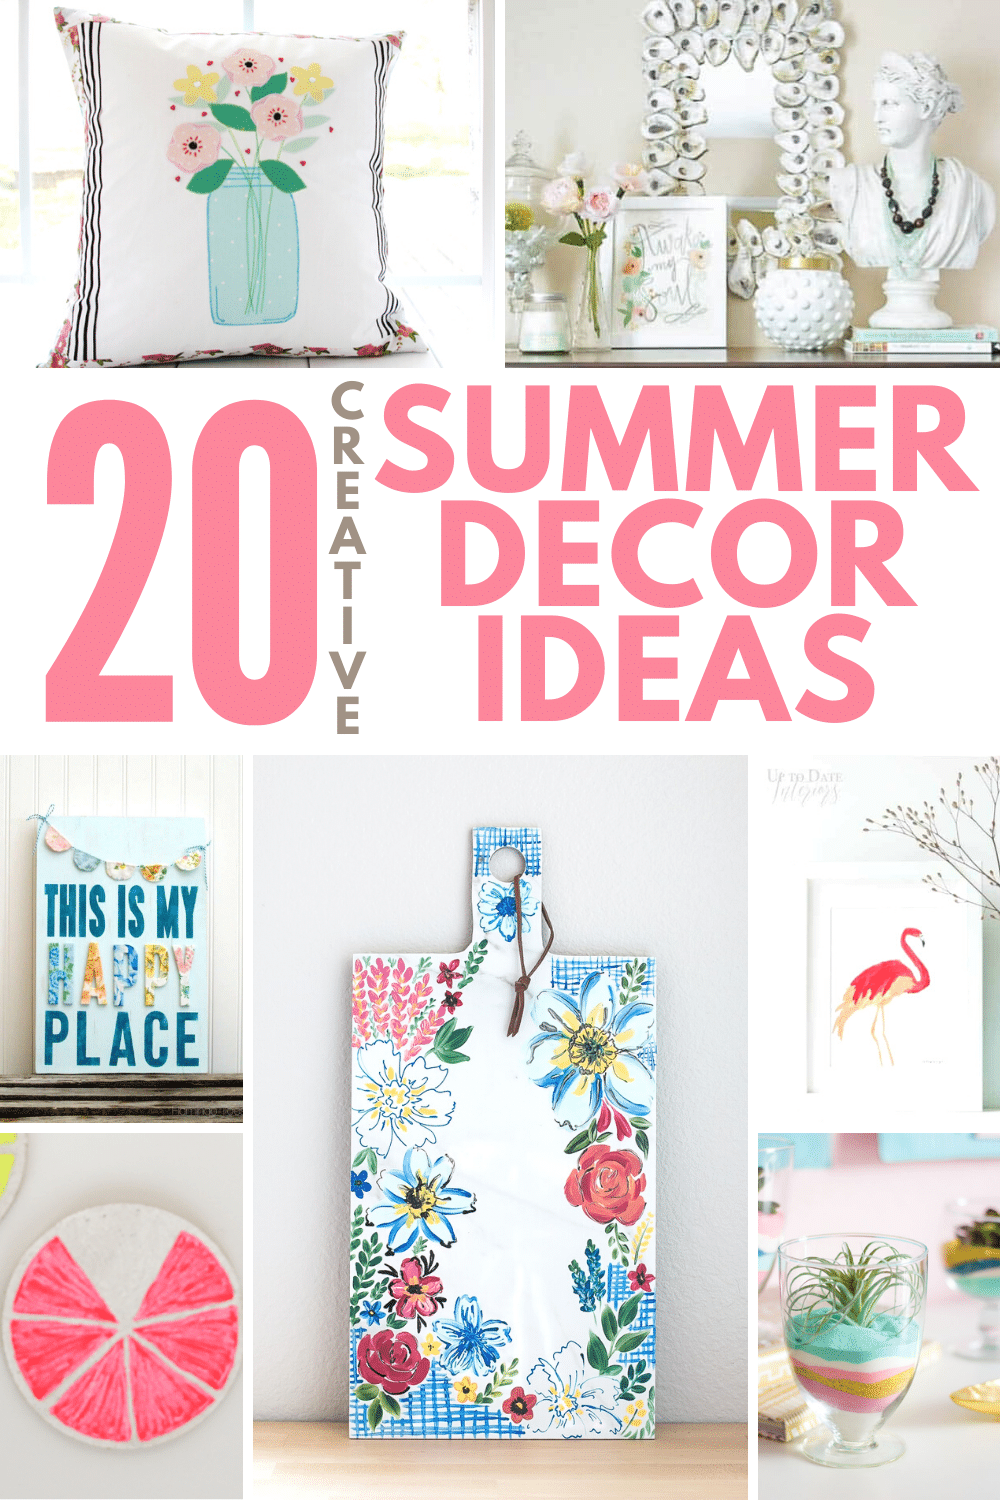 Love summer and want it to be the focus in your house, forever and always? Freshen your home up and give it a summer feeling with these DIY summer décorideas! via @petroneagu